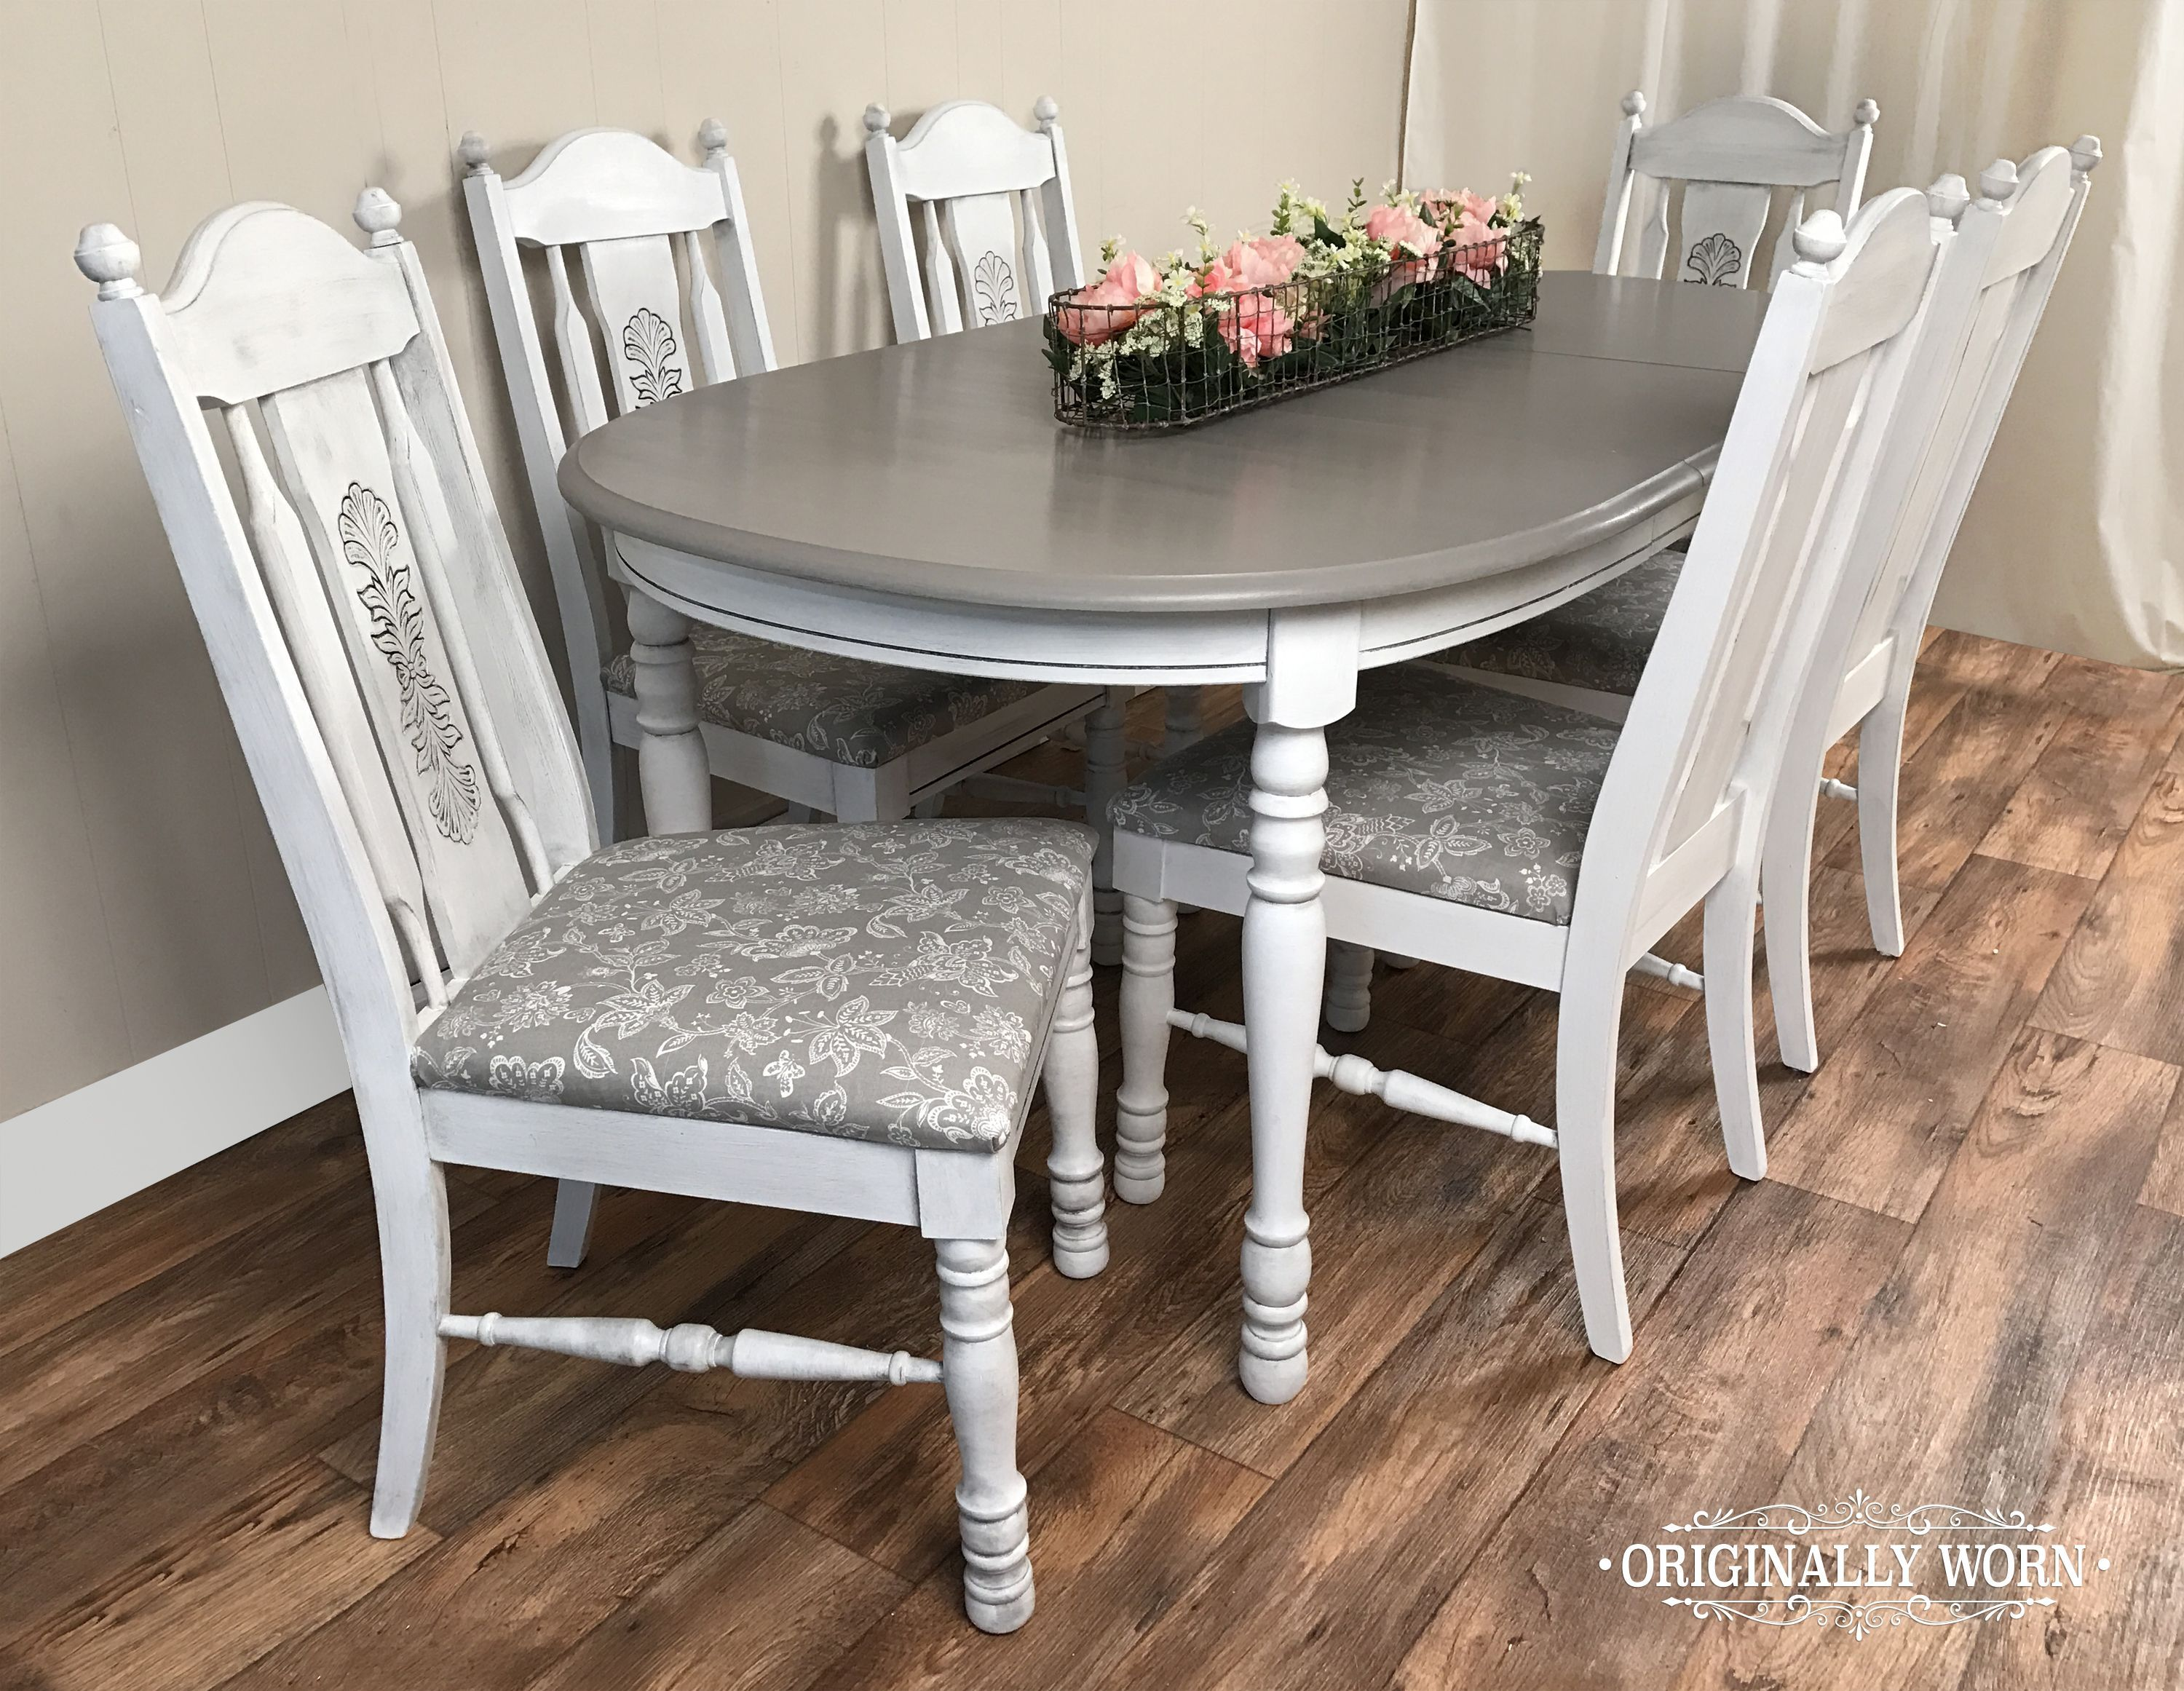 7 Piece Oval Dining Set in Annie Sloan Chalk Paint in Pure White and ...